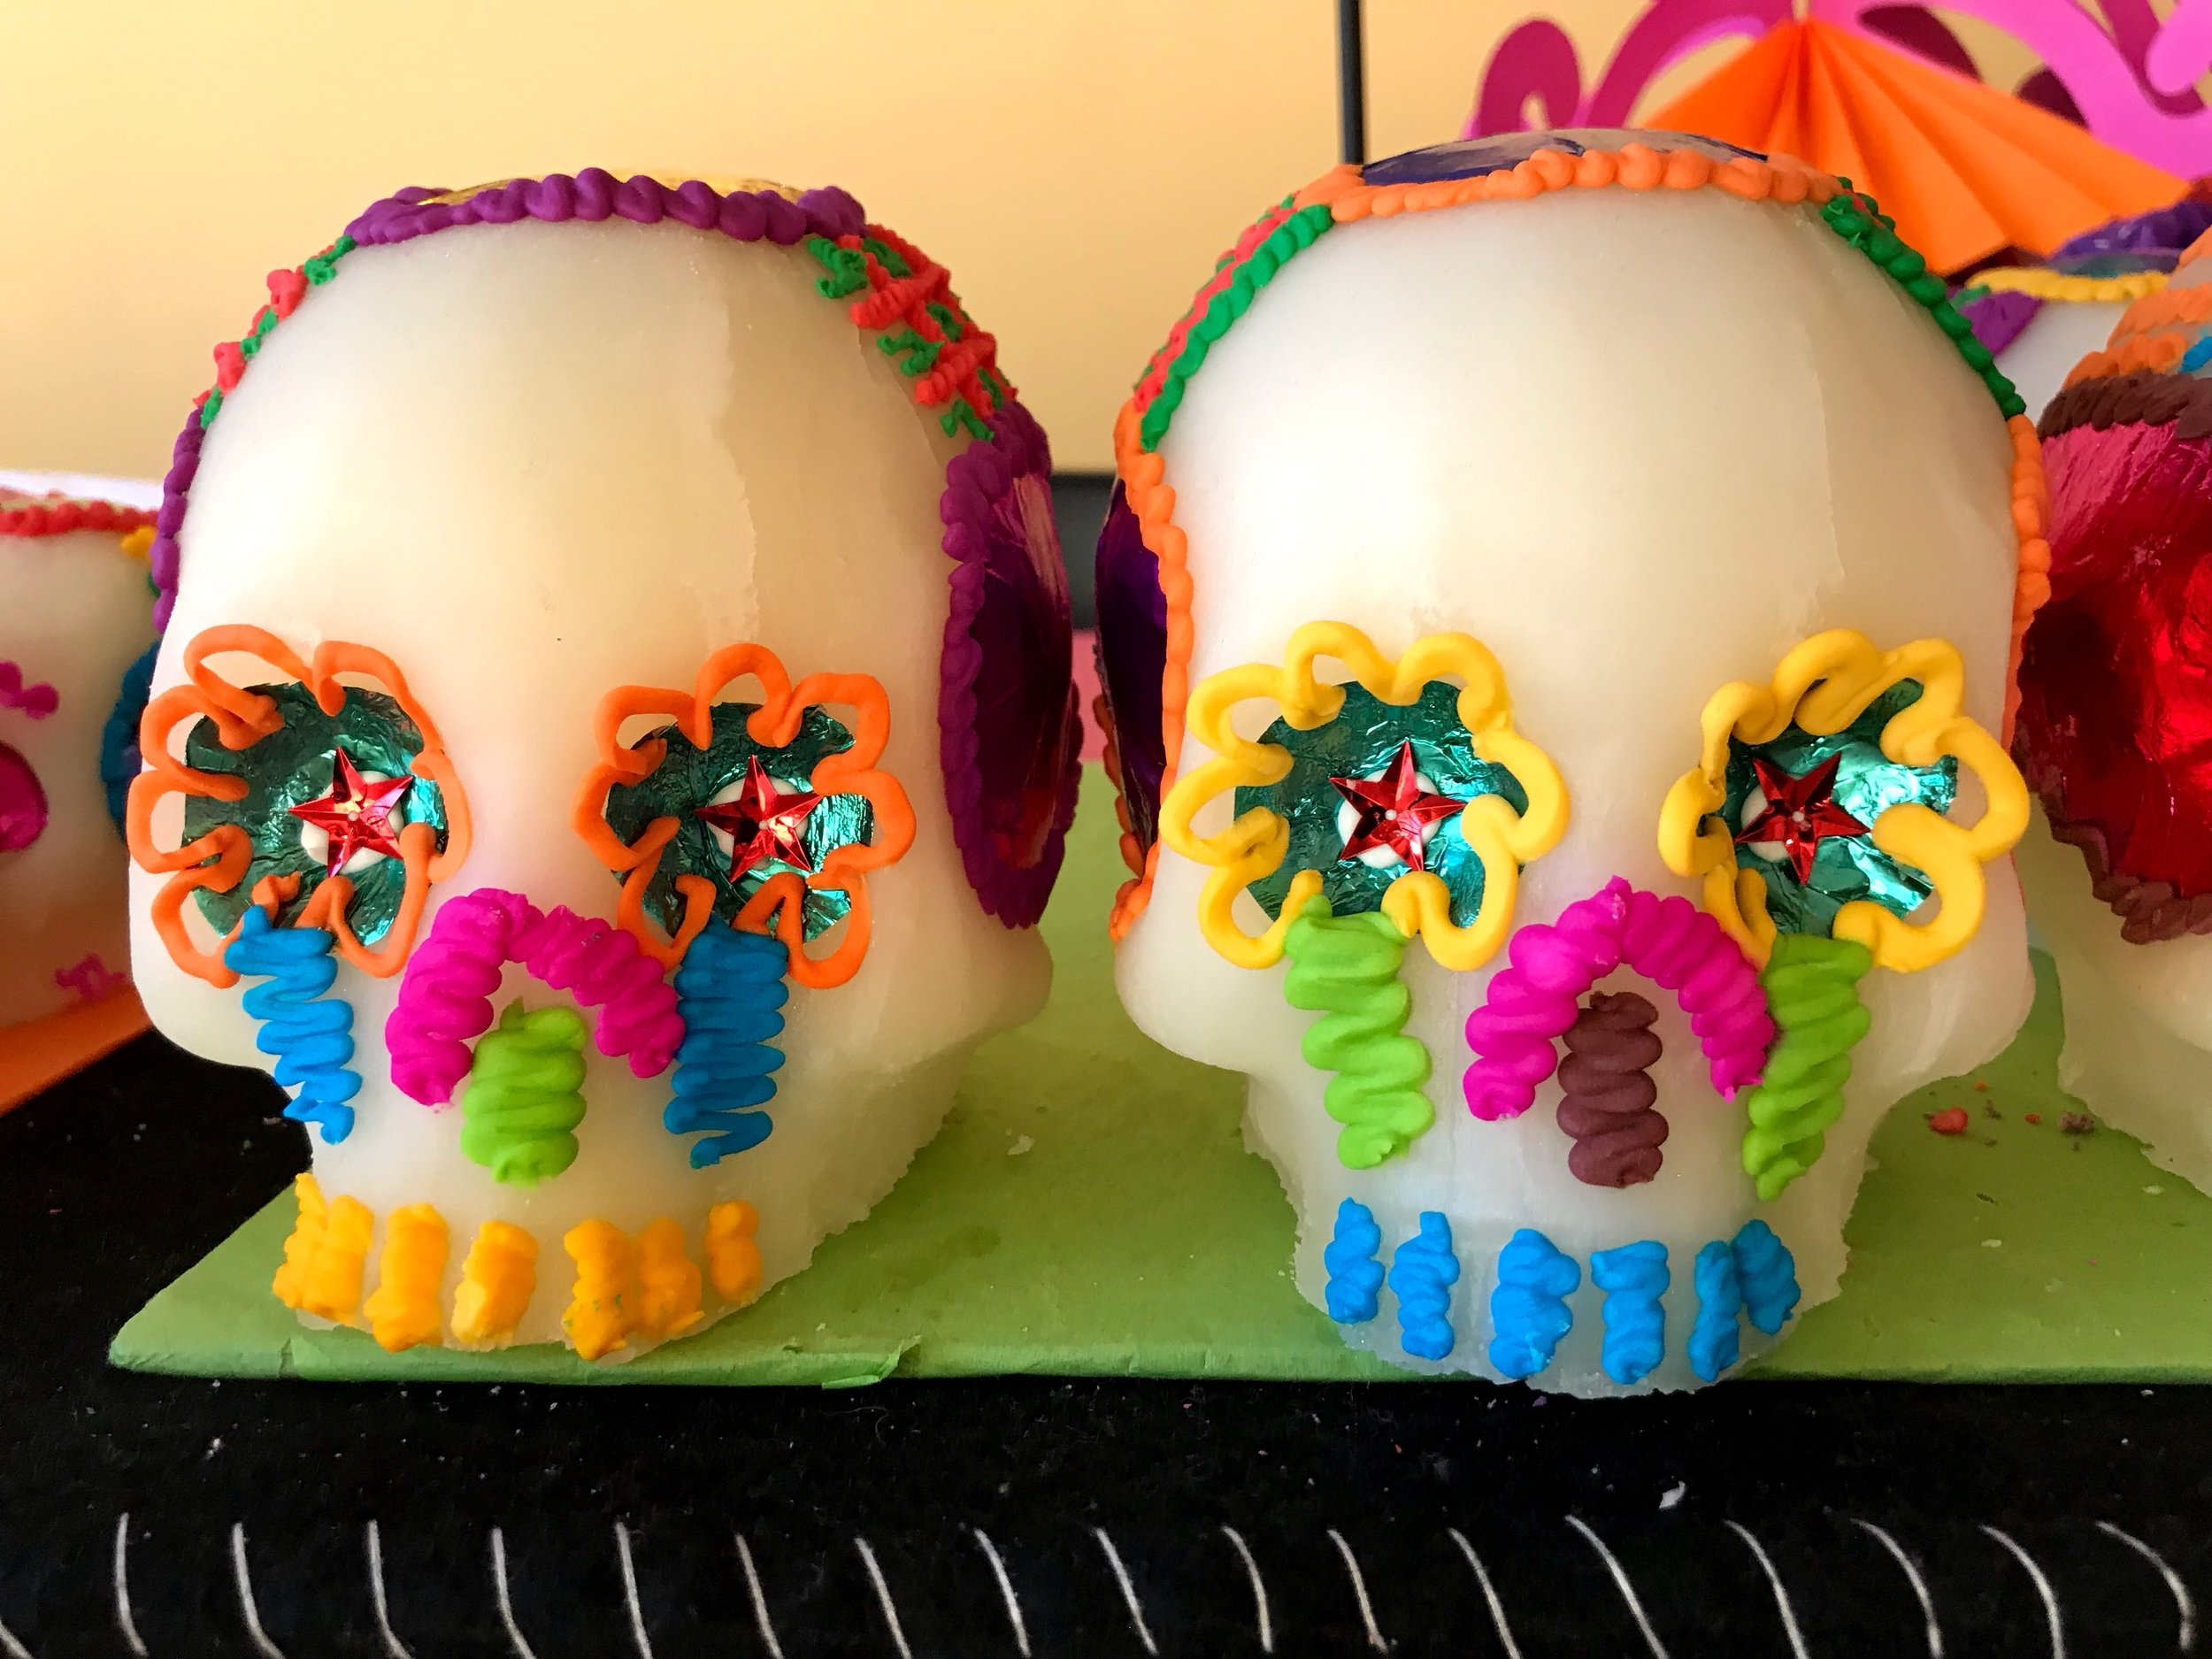 These sugar skulls were crafted by the Mondragón family in Mexico, a specialty they've worked on for generations. The name of the deceased is written on the forehead of the skull